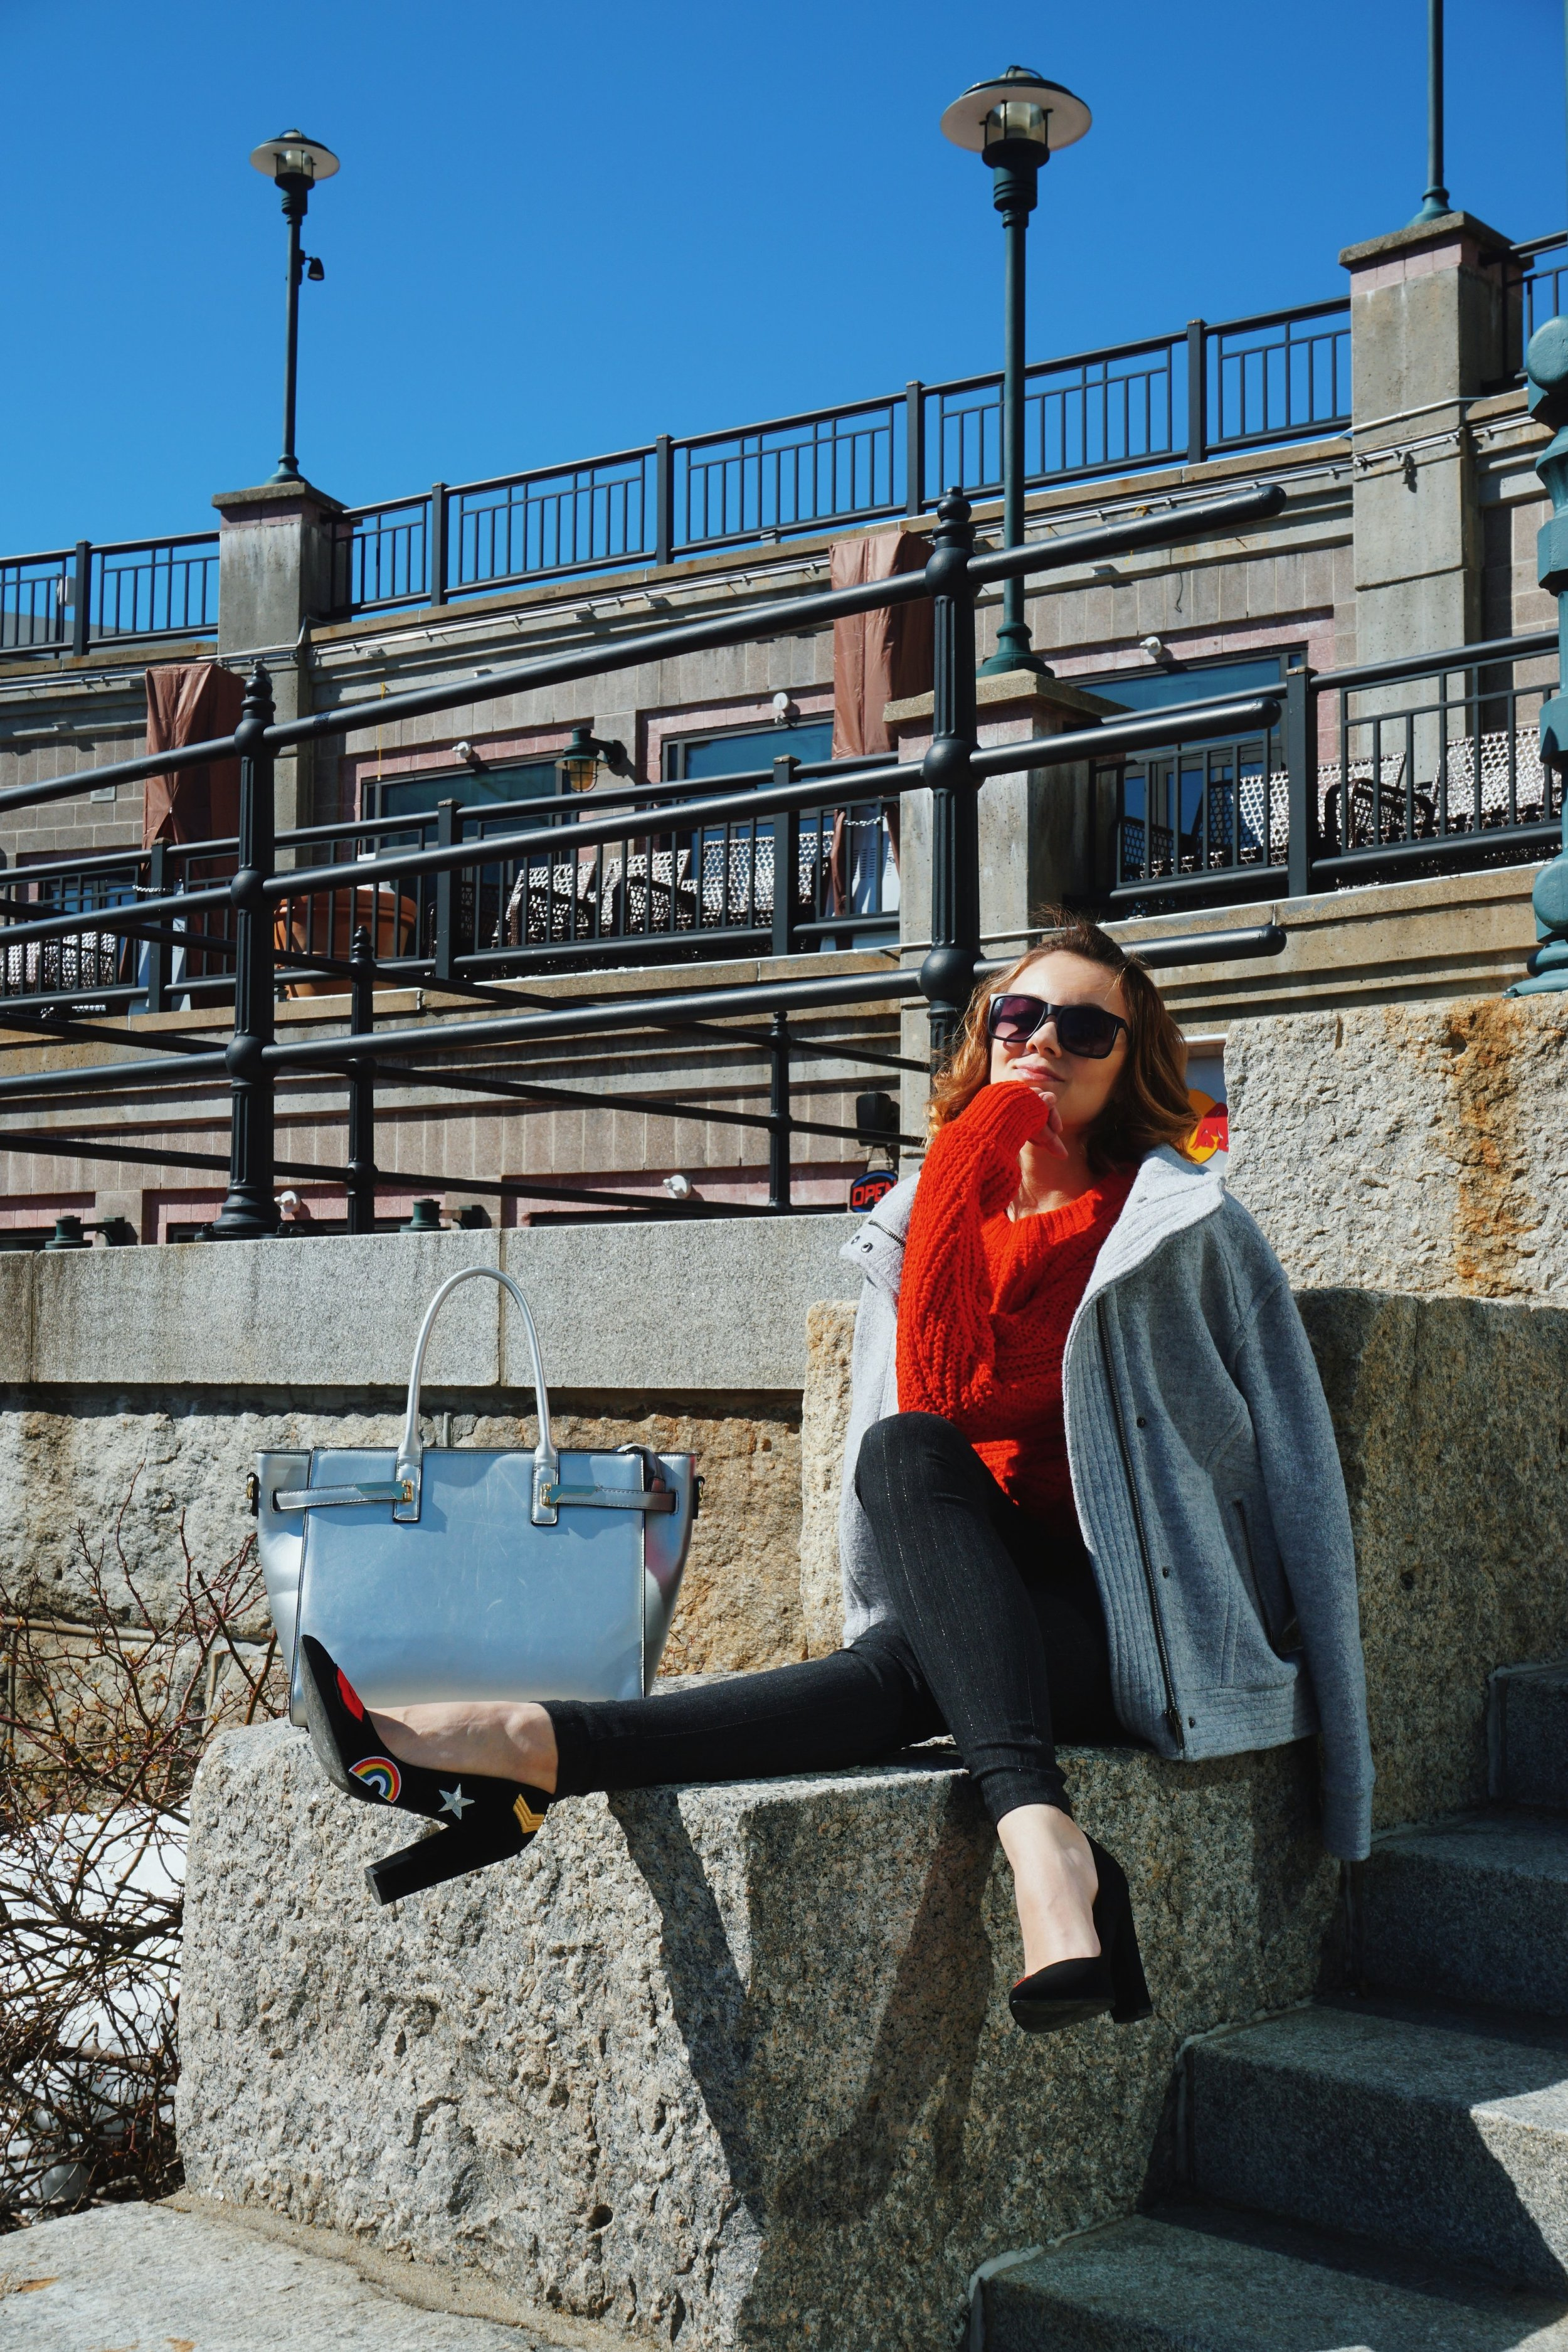 Fashion outfit inspiration on a blogger: red chunky sweater, skinny dark pants, black pumps, gray coat hanging off the shoulder, and silver bag.